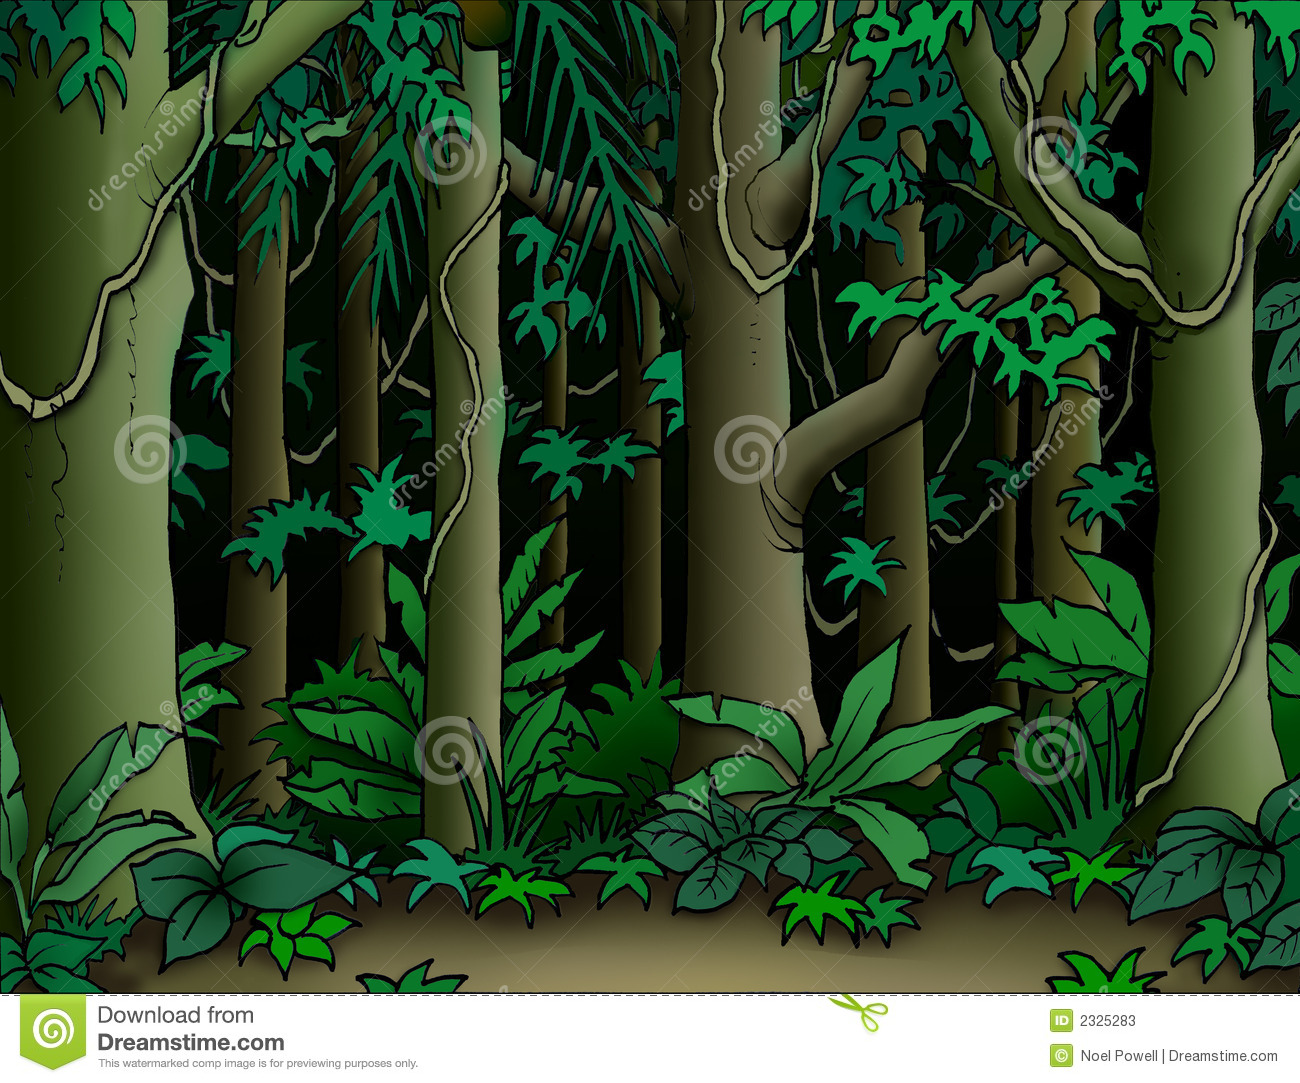 Jungle Clip Art Background | Clipart Panda - Free Clipart Images